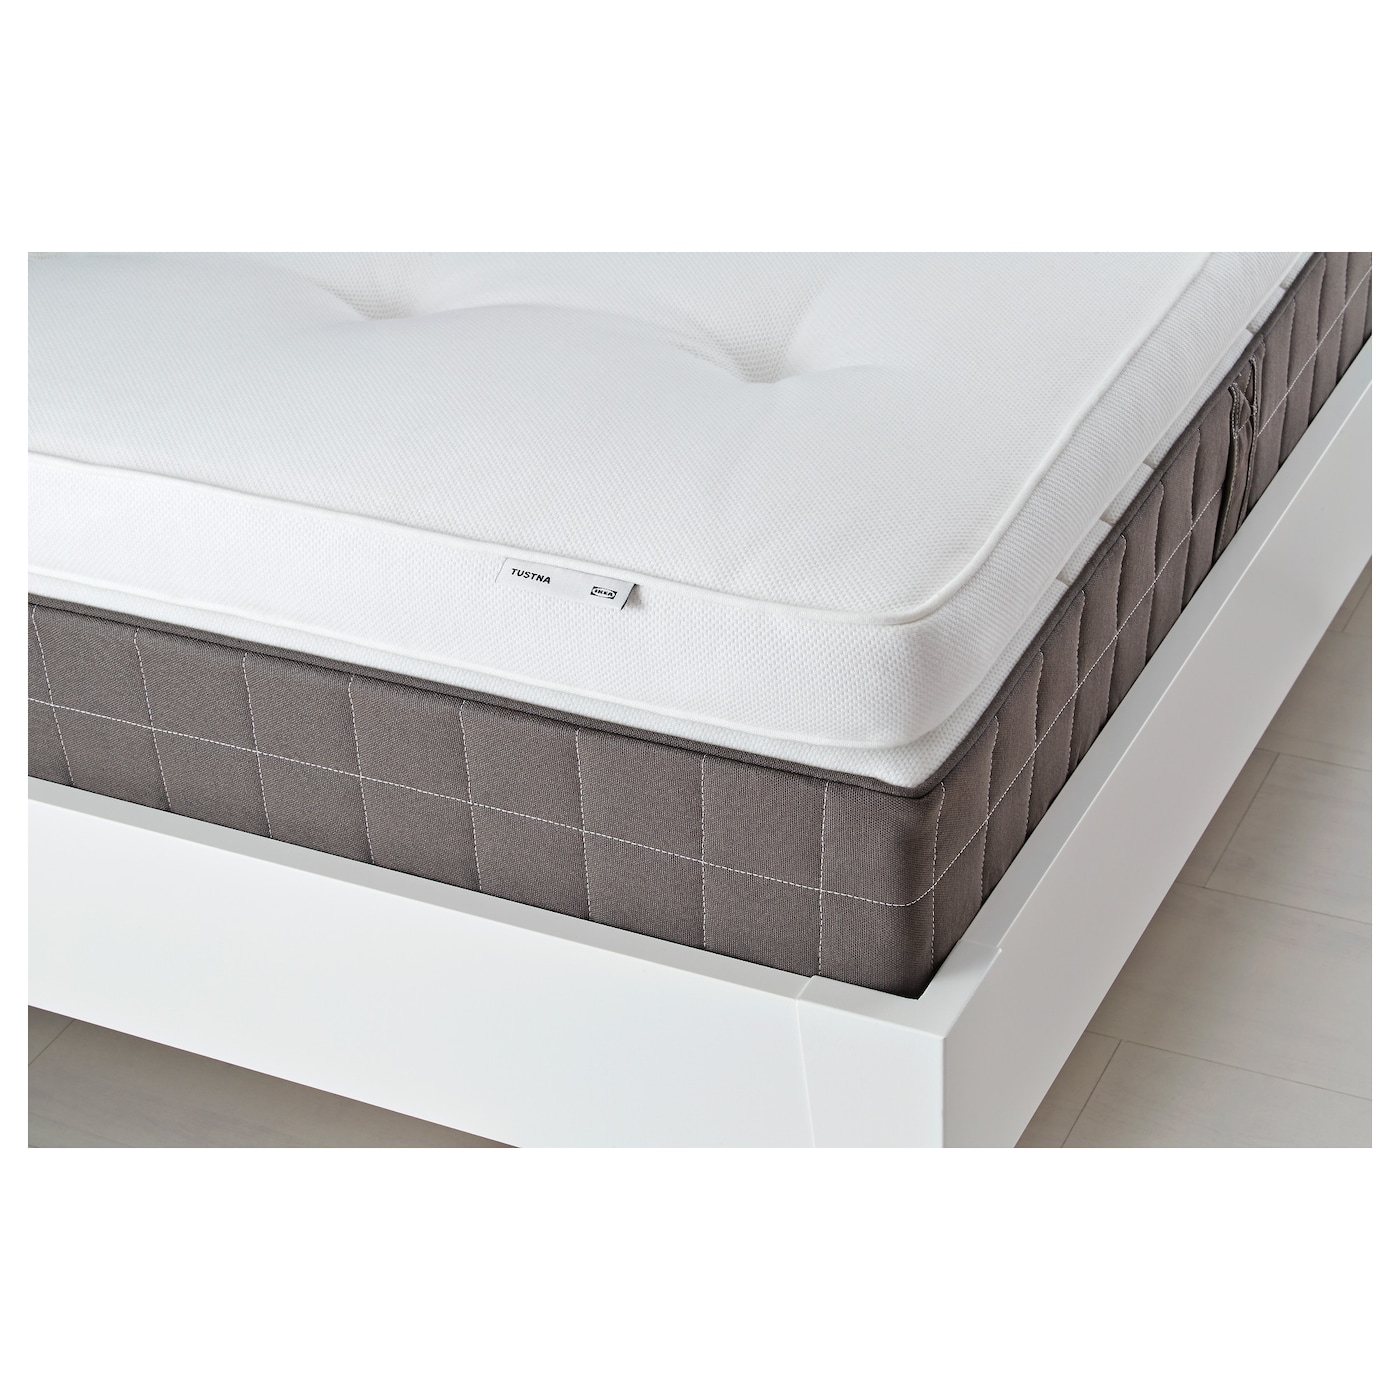 tustna surmatelas blanc 160 x 200 cm ikea. Black Bedroom Furniture Sets. Home Design Ideas